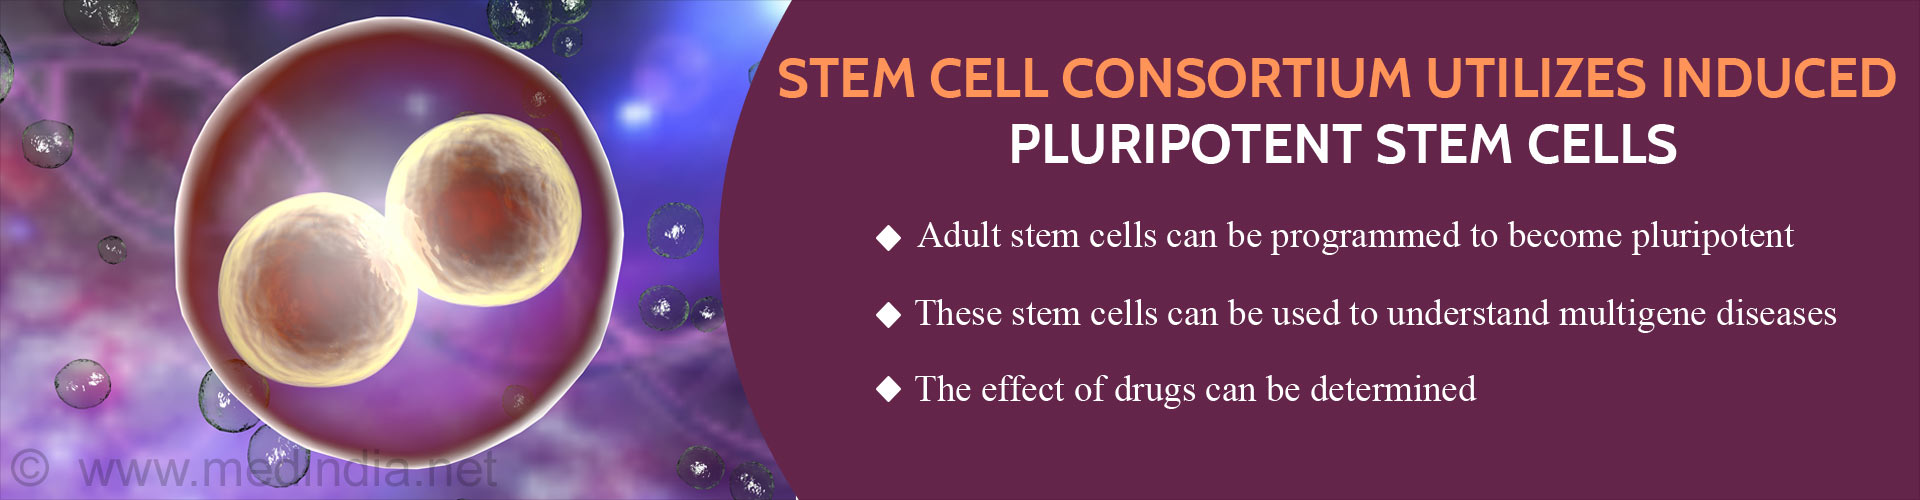 Stem Cell Consortium Uses Induced Adult Stem Cells to Study Complex Diseases